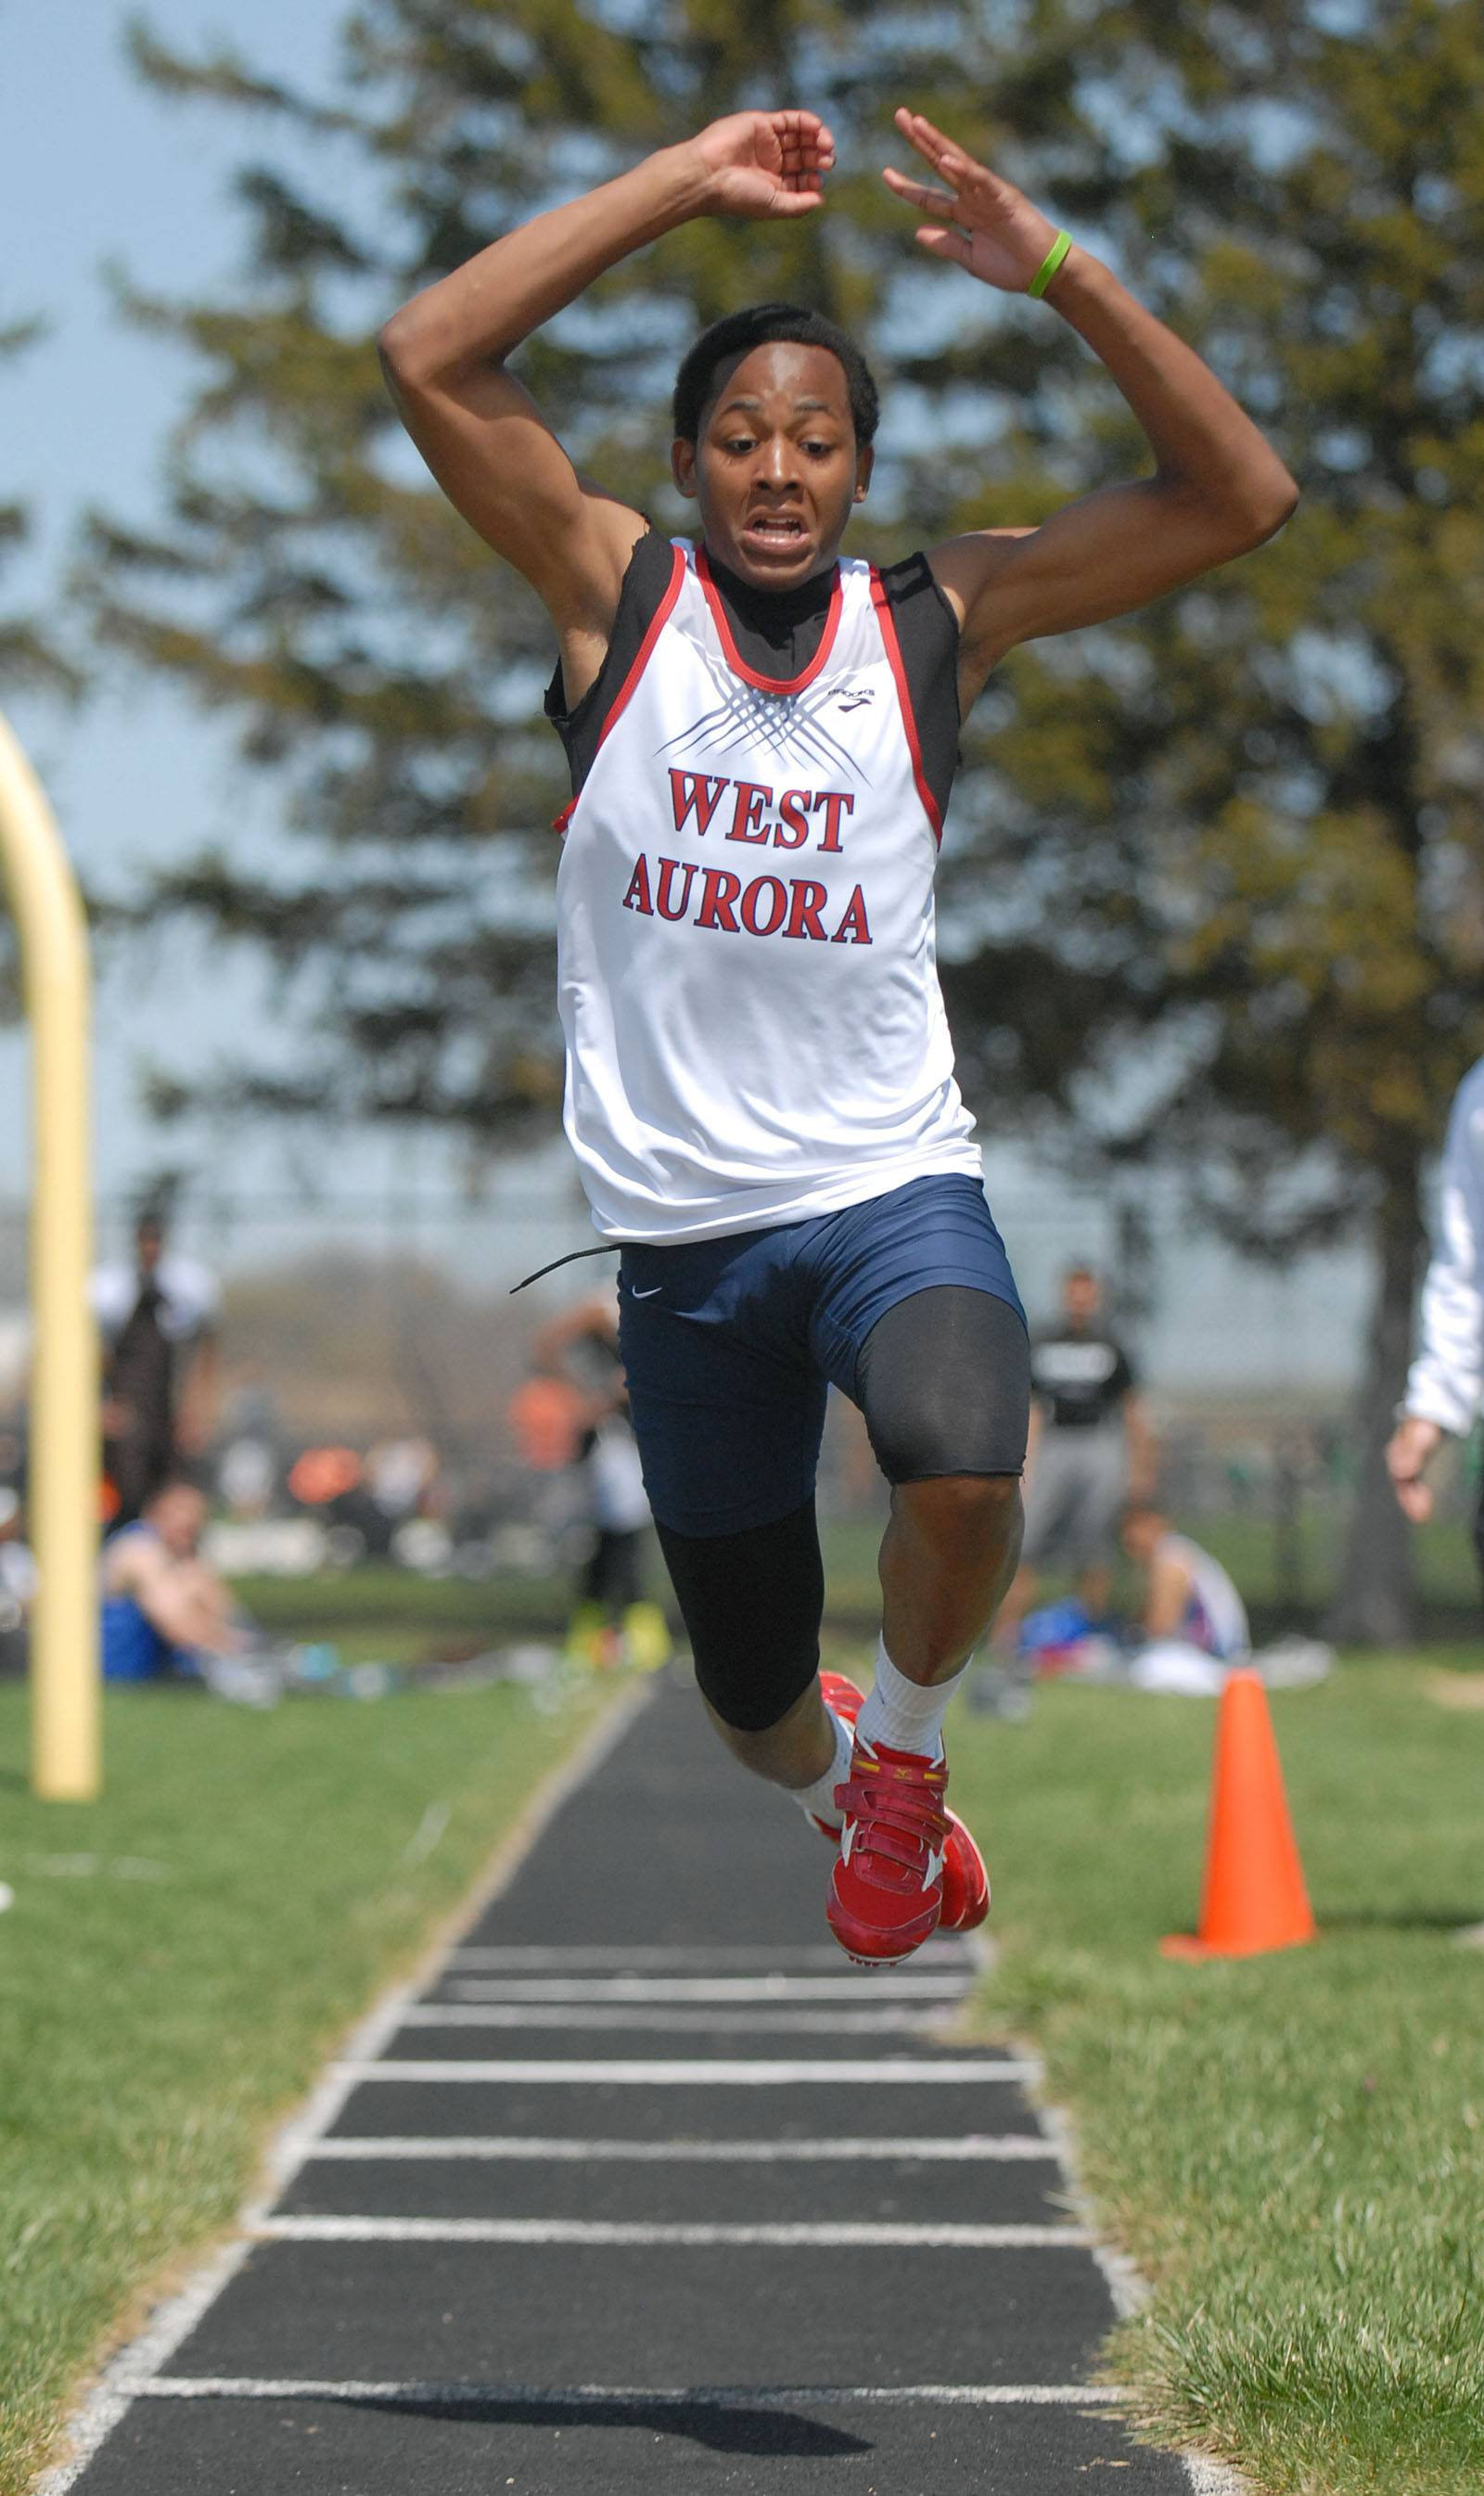 West Aurora's Davion Cross in the finals of the triple jump at Kaneland's Peterson Prep Invitational on Saturday, April 26.